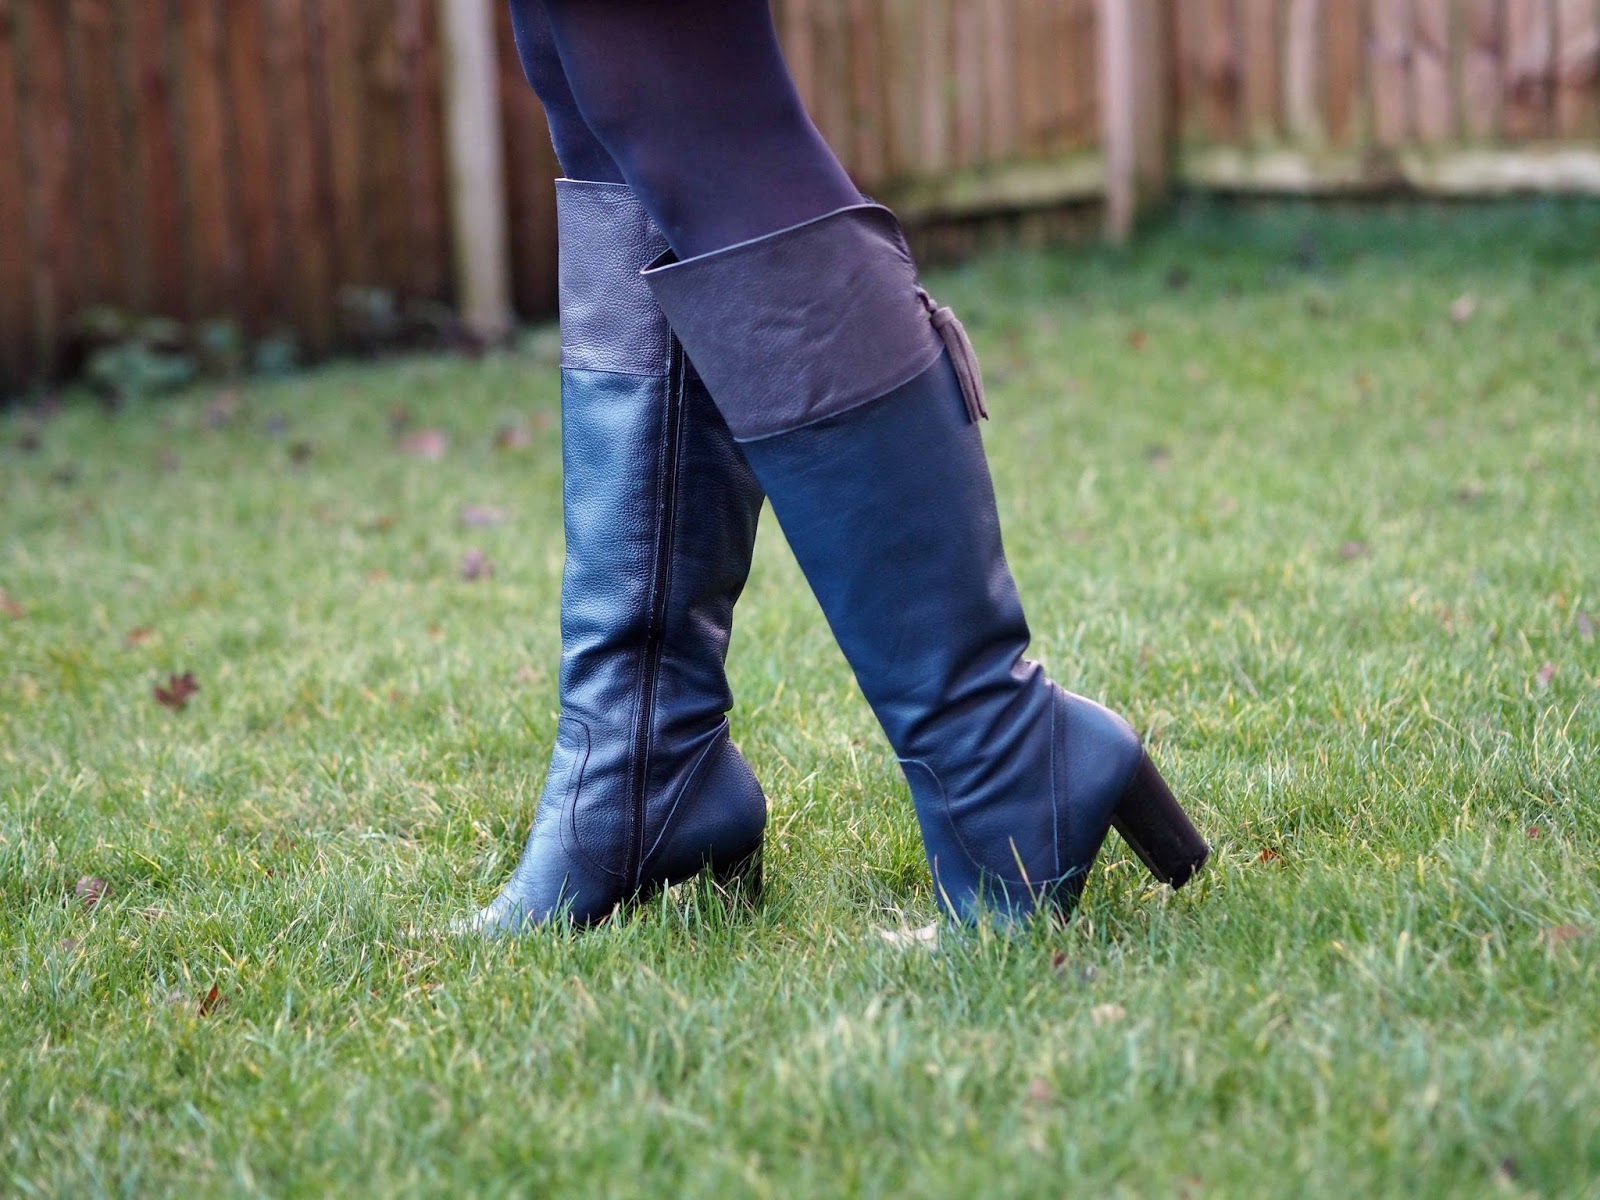 Kaleidoscope navy knee high leather boots with tassels